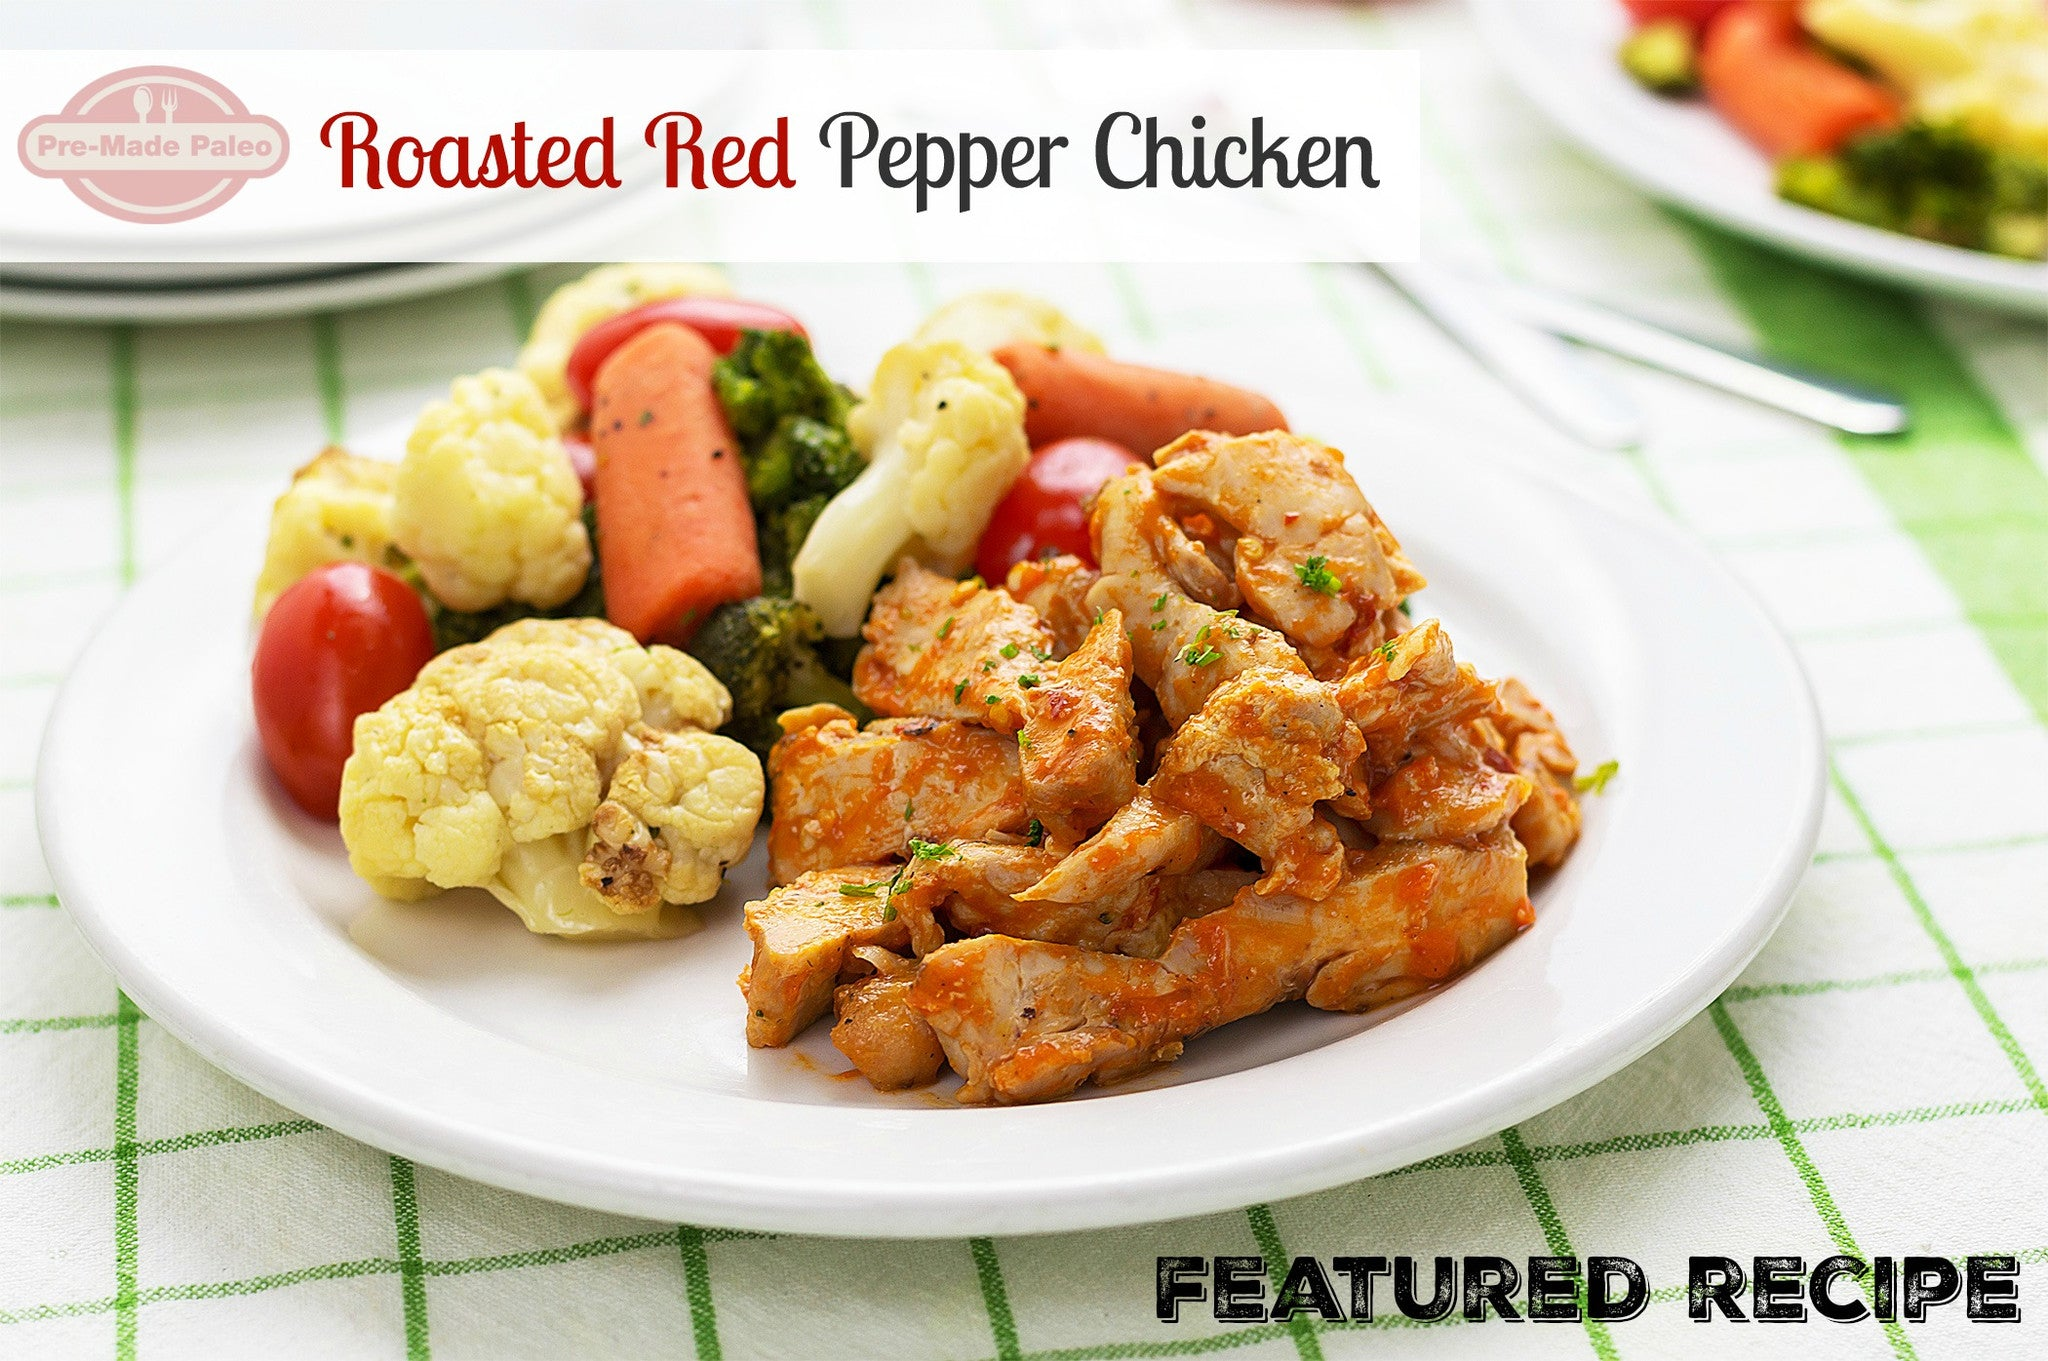 Recipe: Roasted Red Pepper Chicken